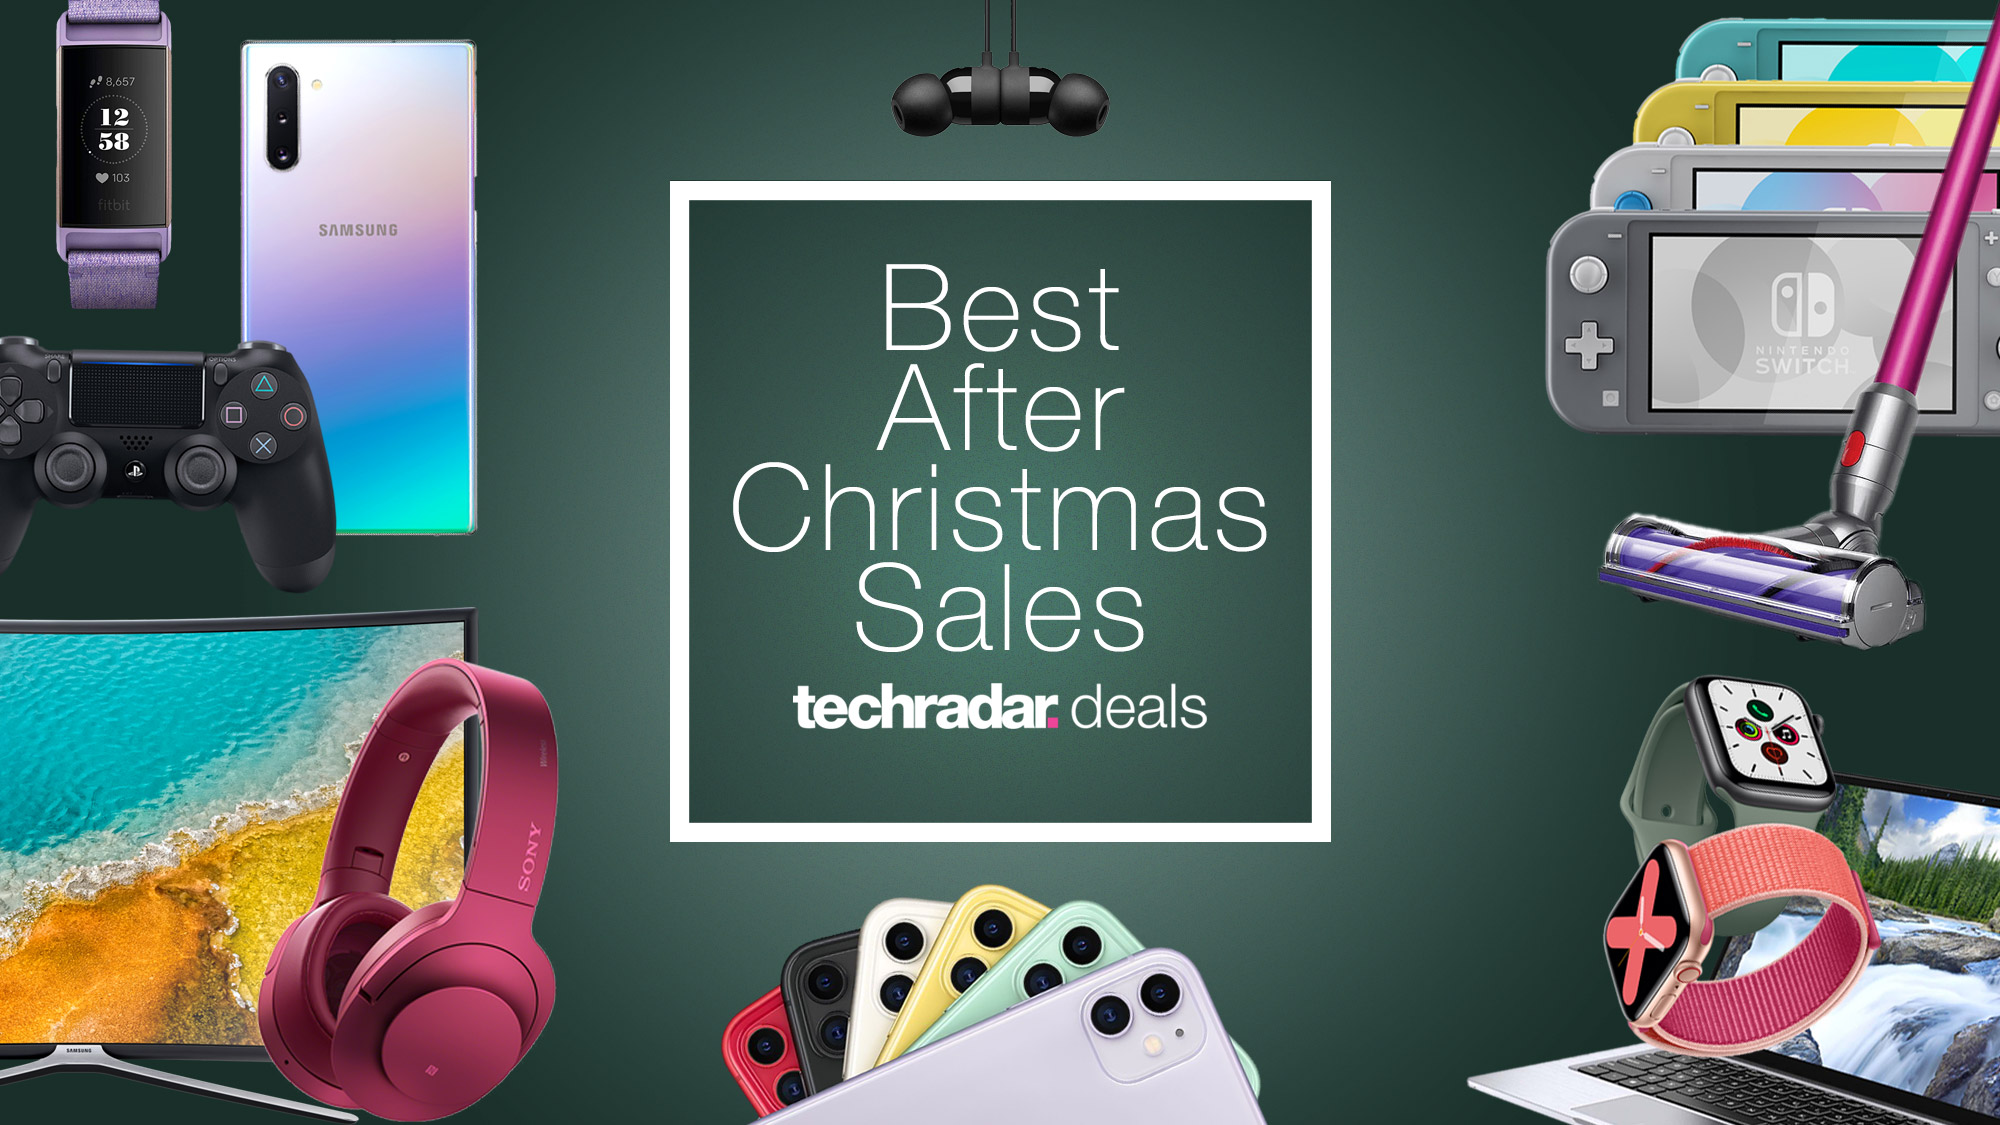 The best after-Christmas sales 2019: deals from Walmart, Amazon, Best Buy & more